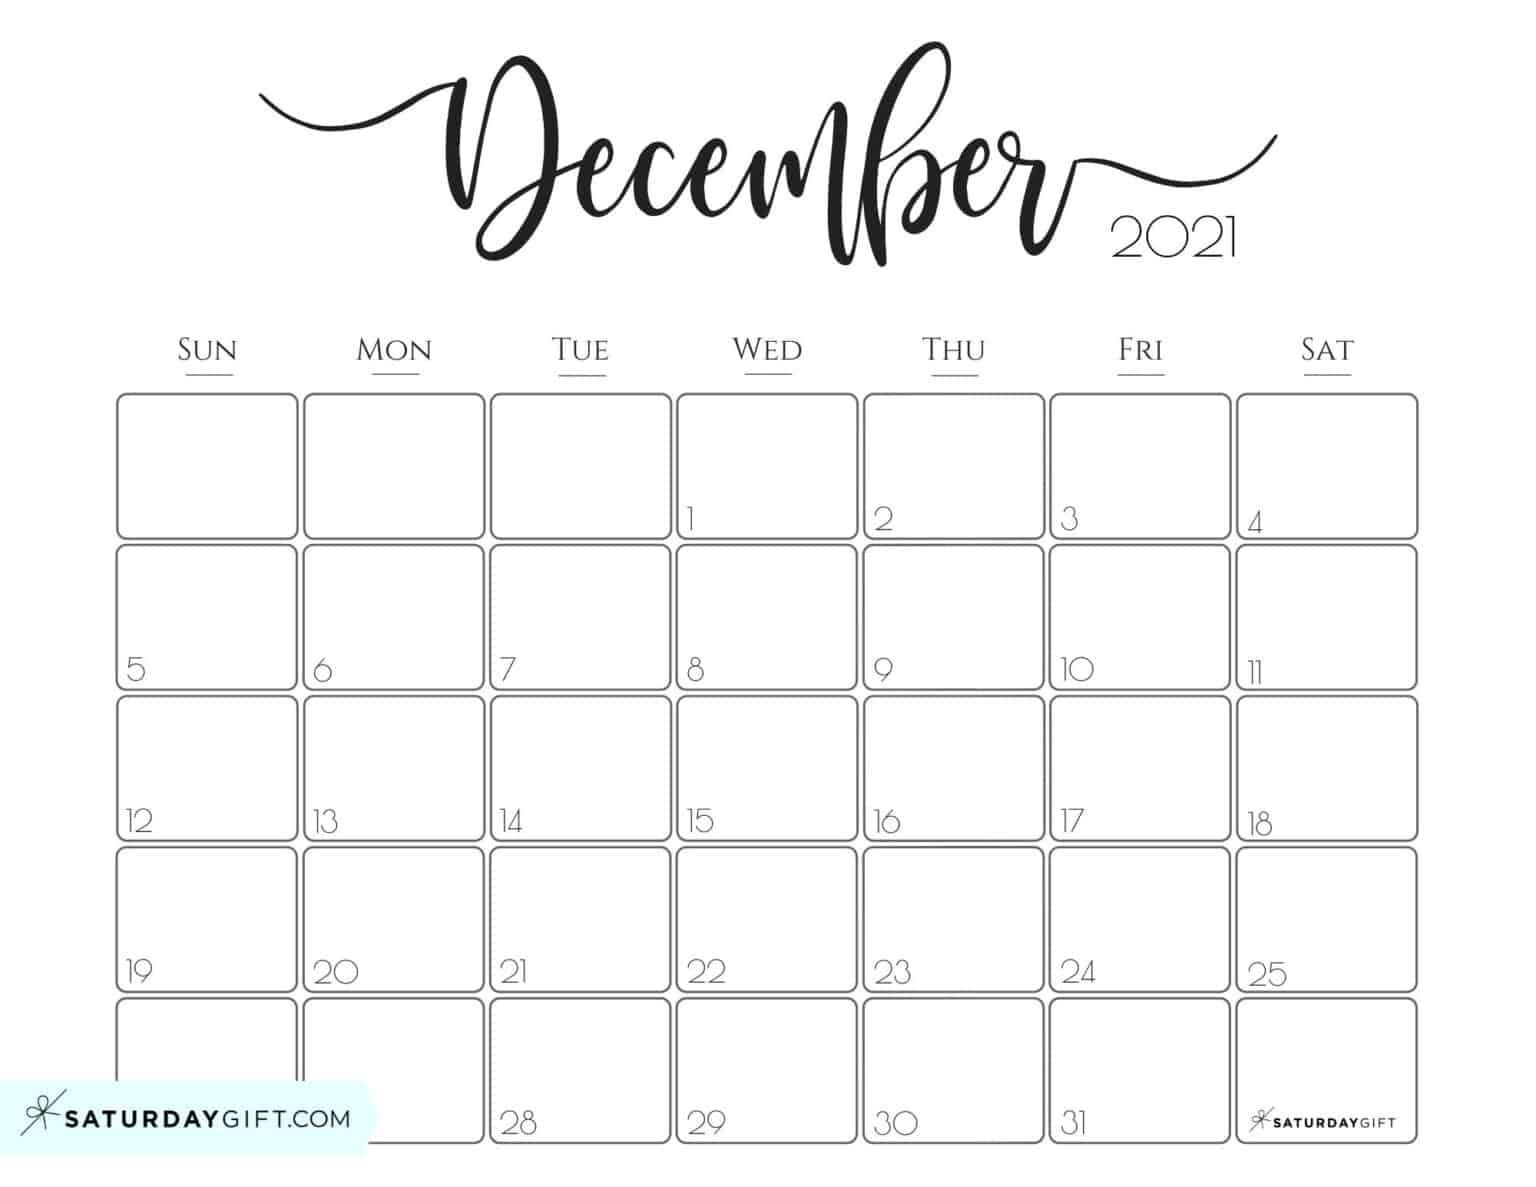 Elegant 2021 Calendar by SaturdayGift - Pretty Printable ...